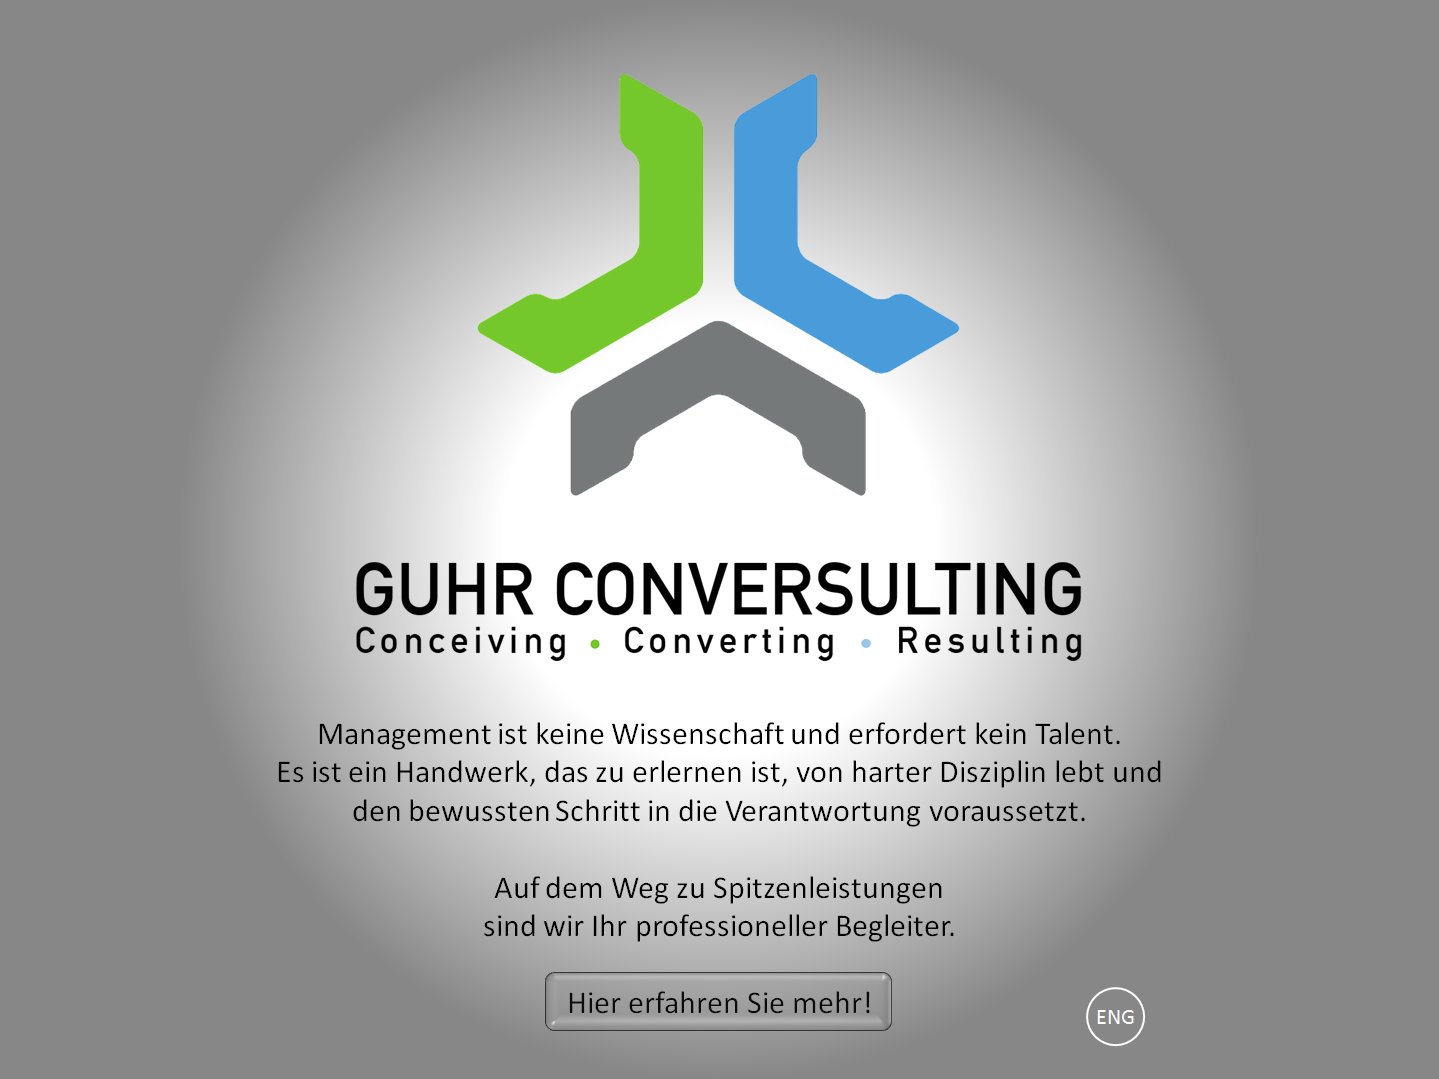 Conversulting